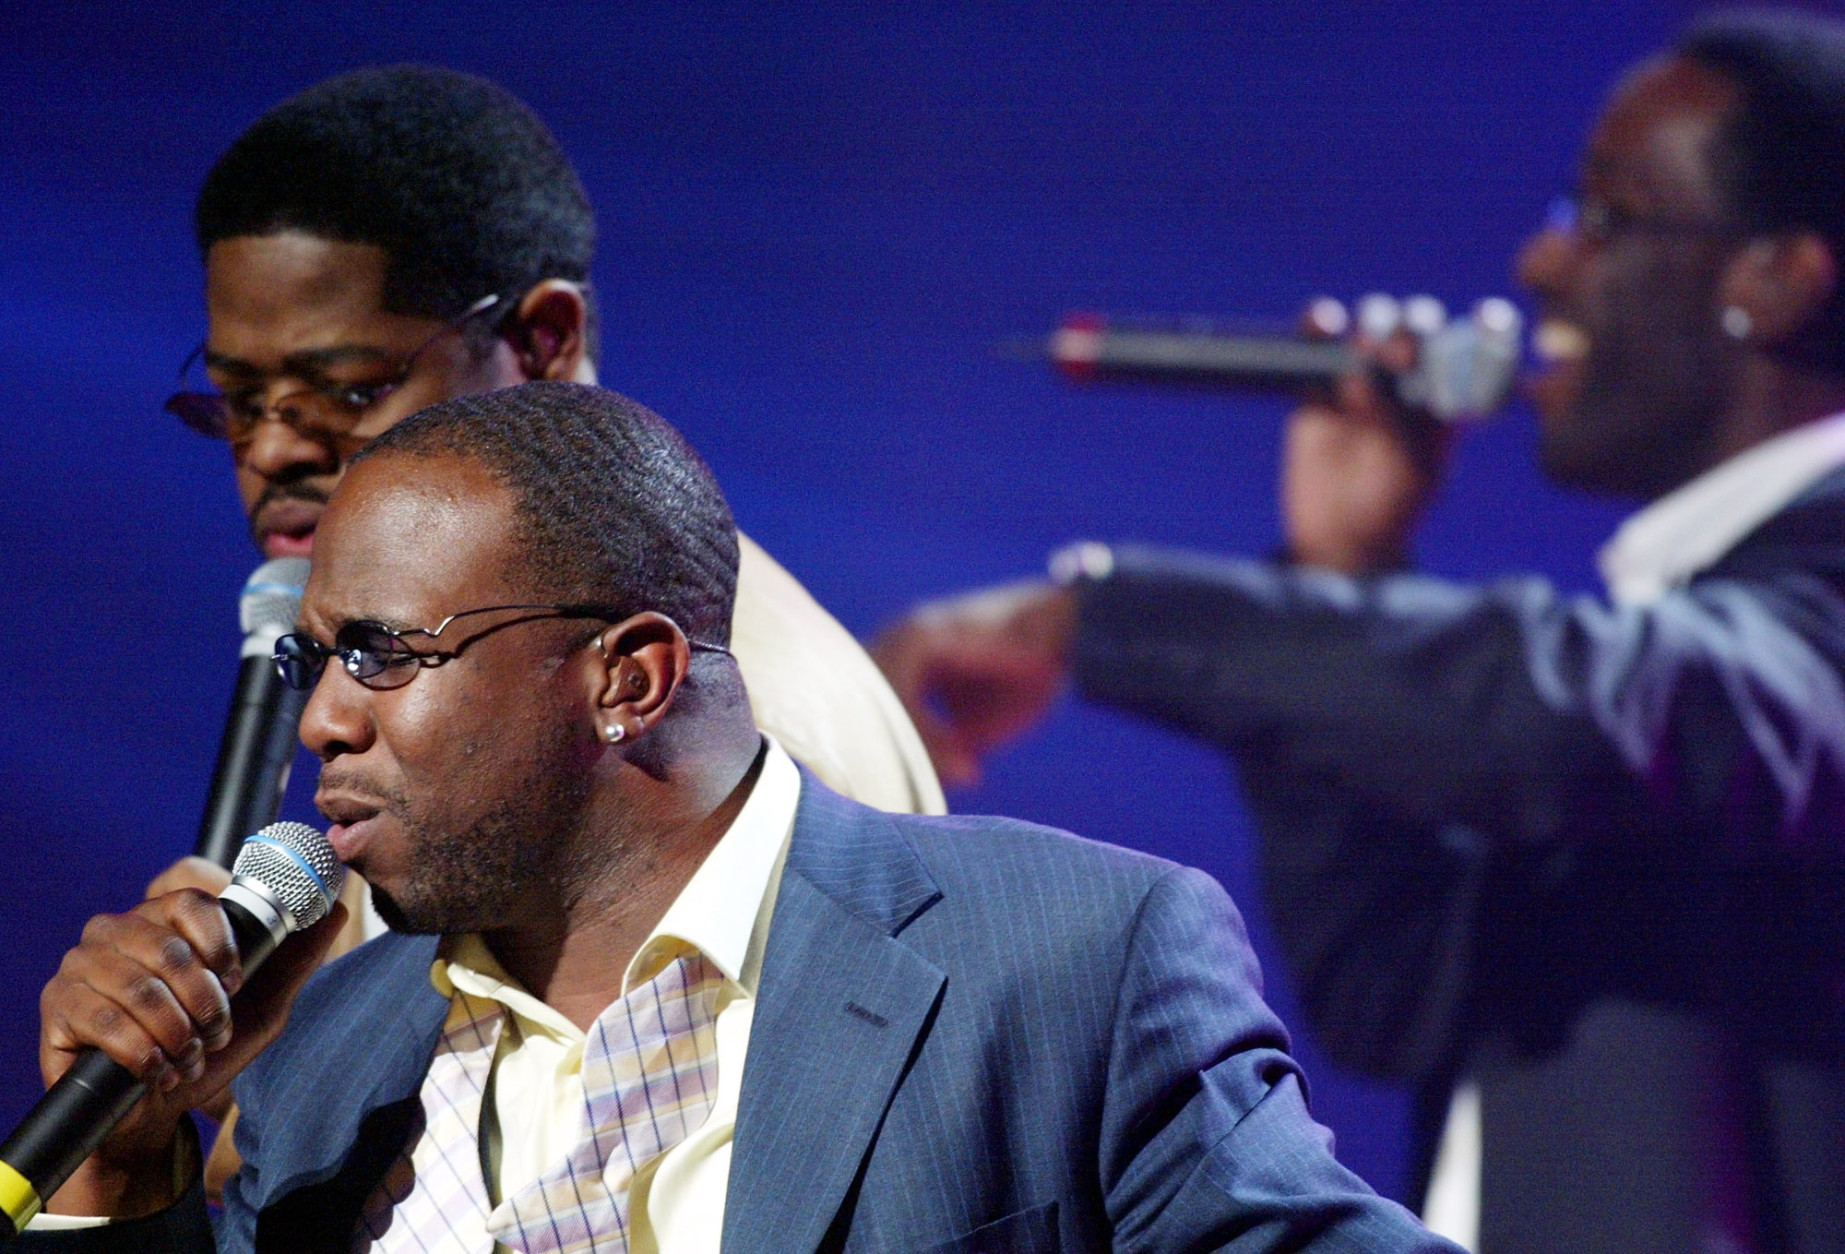 Boyz II Men, clockwise from foreground, Wanya Morris, Nathan Morris and Shawn Stockman perform during the first MTV Video Music Awards Japan in Tokyo Friday night, May 24, 2002.  Boyz II Men, Sheryl Crow, Nickelback and other American talent joined such Japanese stars as Rip Slyme and rapper Zeebra for the first MTV Music Awards Japan. (AP Photo/Shizuo Kambayashi)